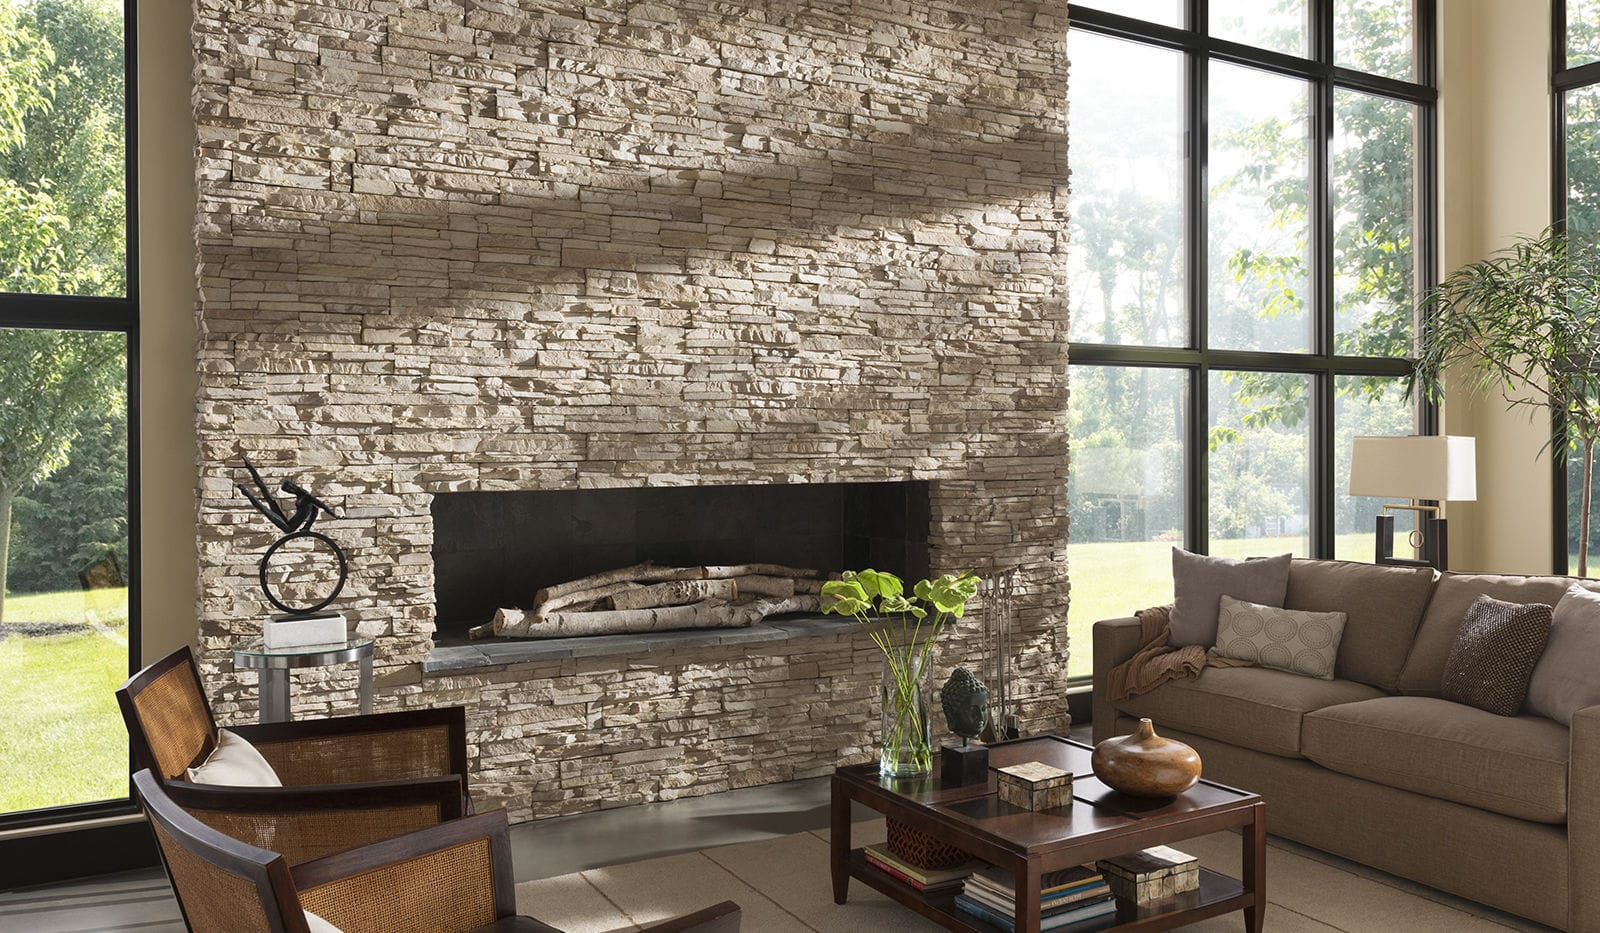 Stone wall cladding exterior interior textured STACKED